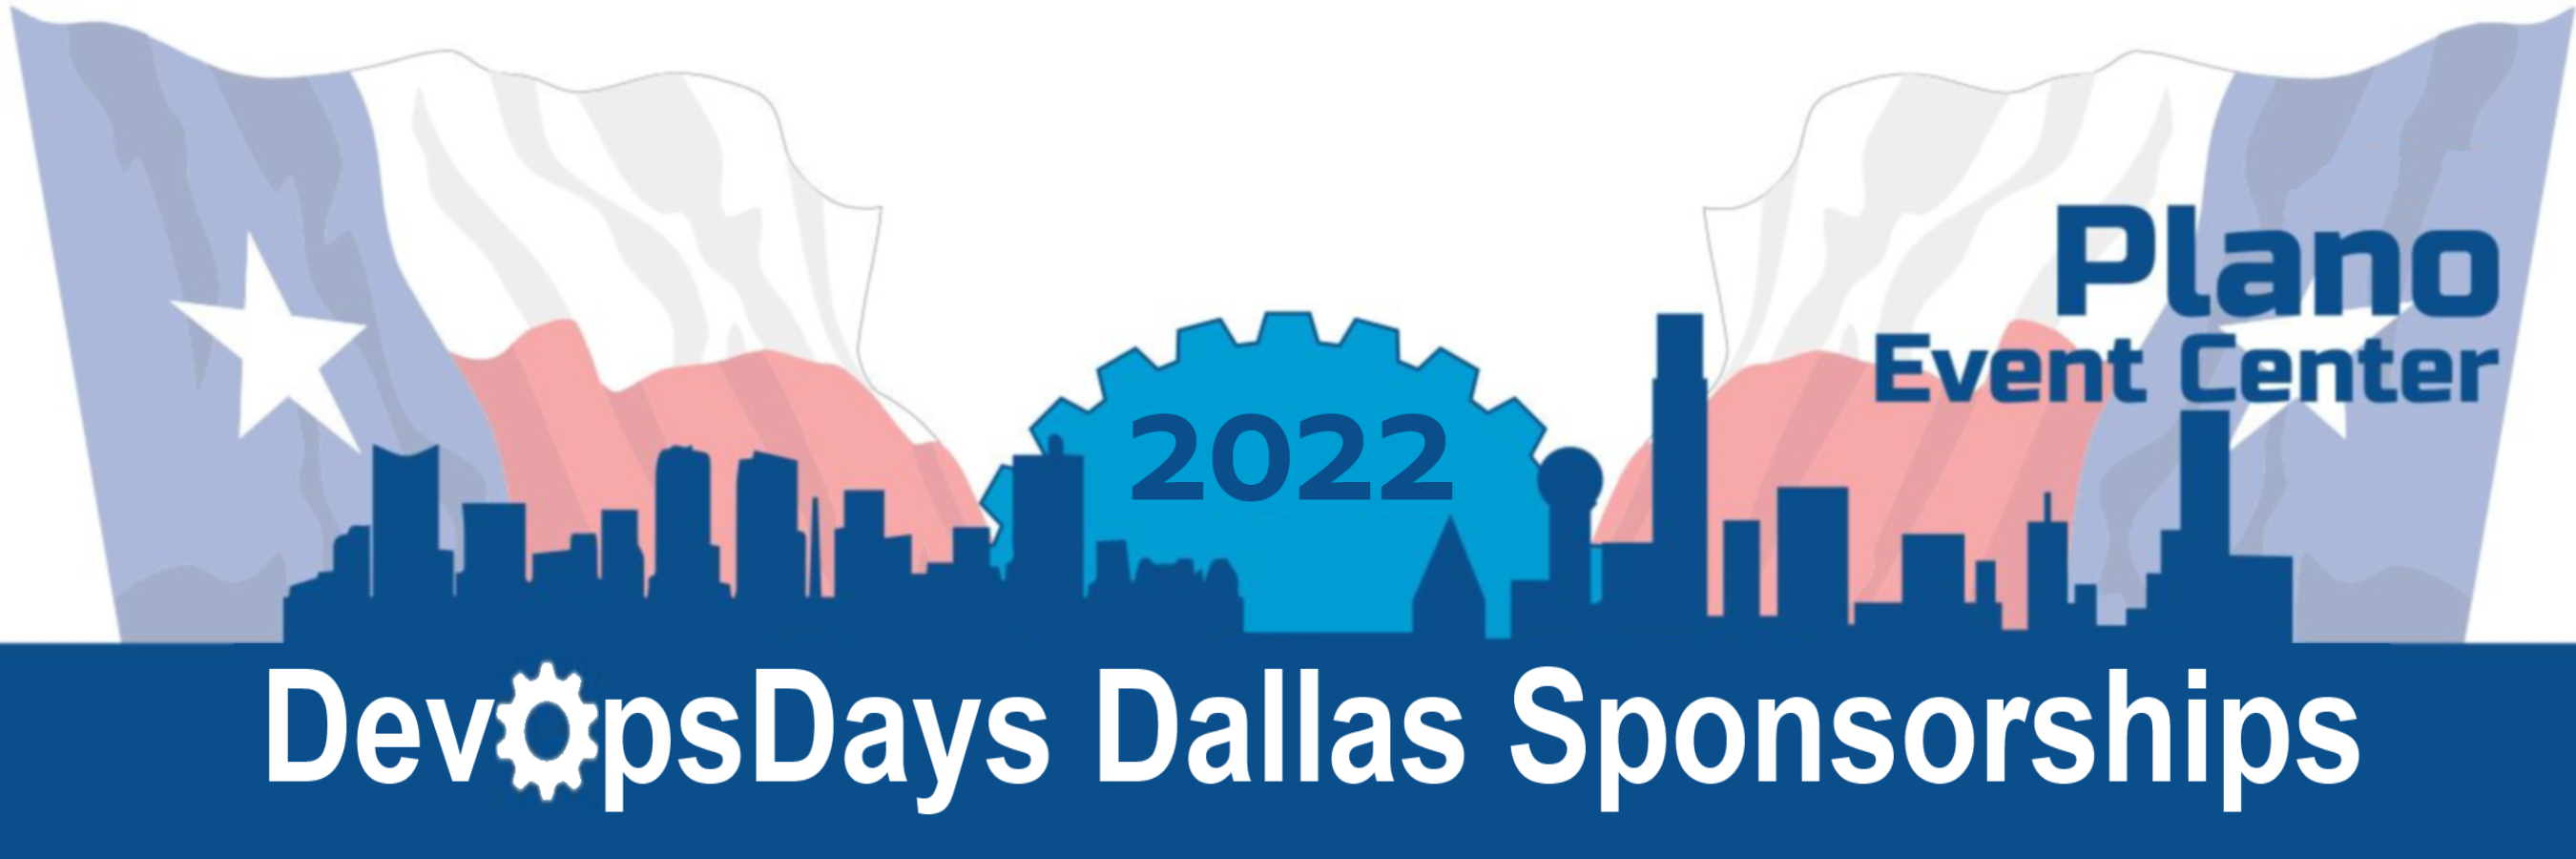 DevOpsDays Dallas 2022